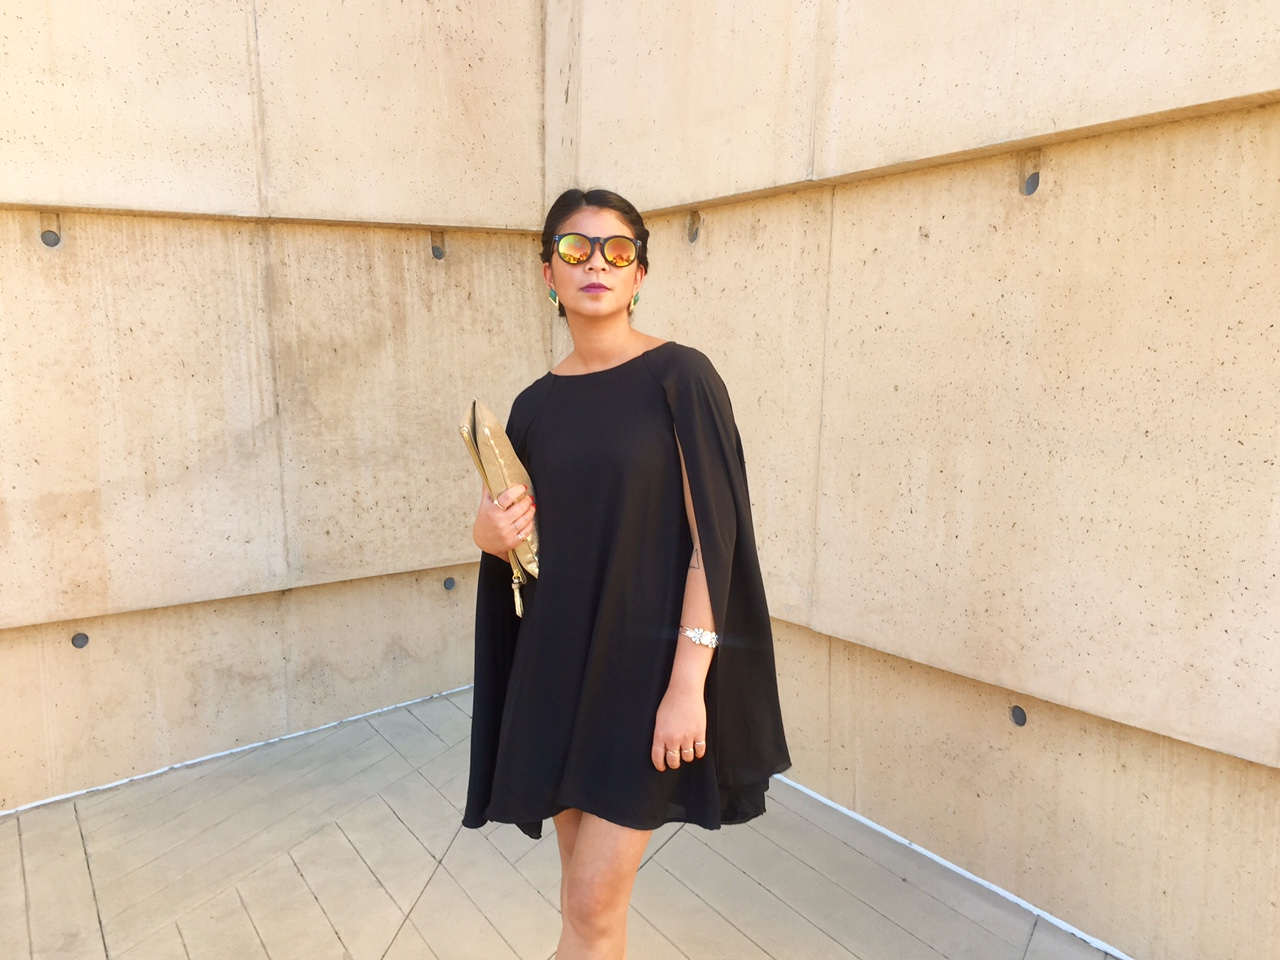 black cape dress, wedding, gold jewelry, gold clutch, portland blogger, los angeles, affordable fashion, portland style blogger, the ptown girls, ootd,